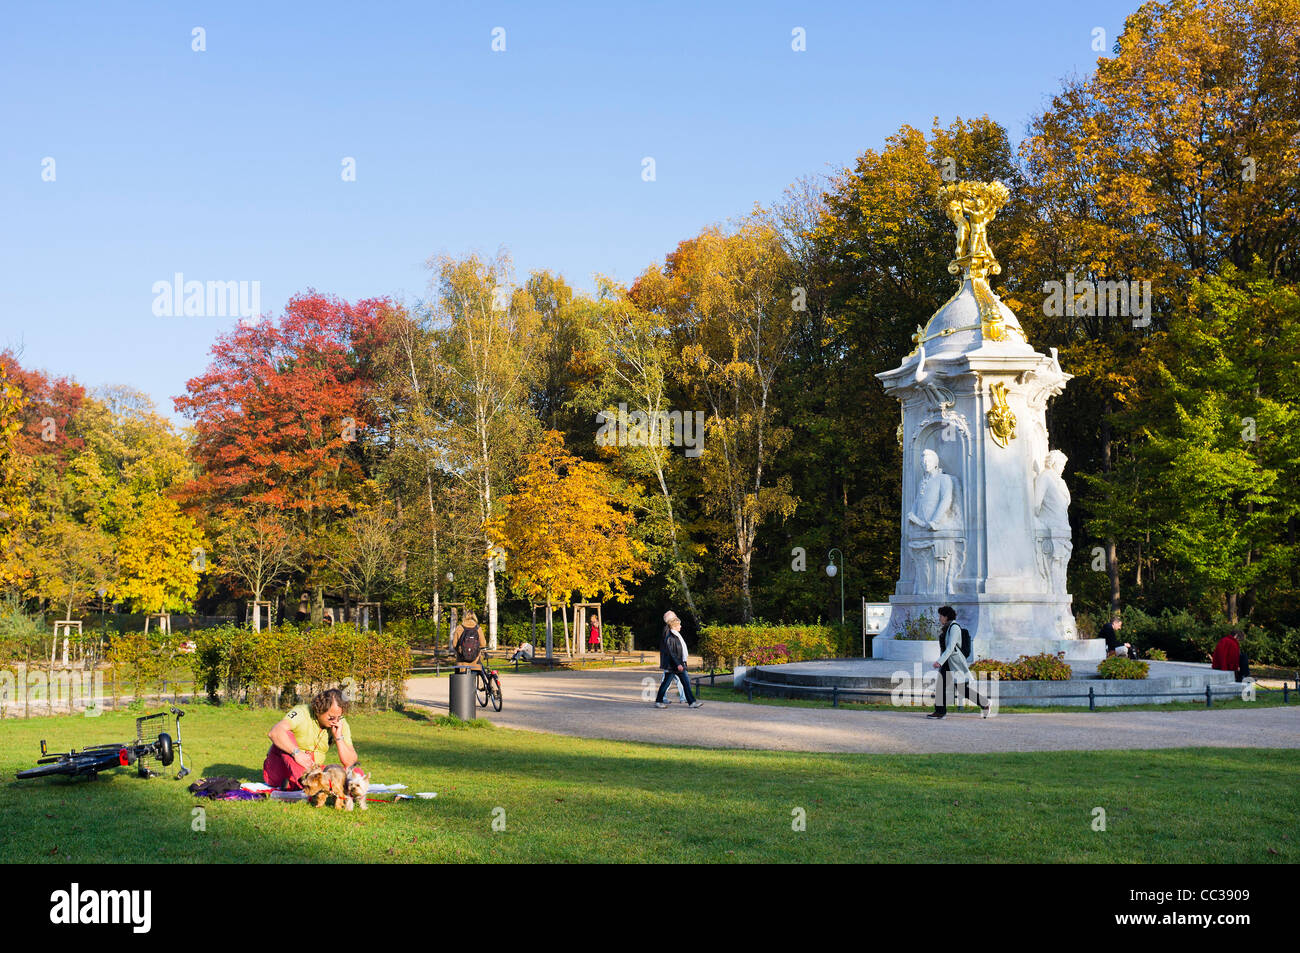 Beethoven-Haydn-Mozart monument, memorial to composers, Tiergarten, Berlin, Germany, Europe - Stock Image